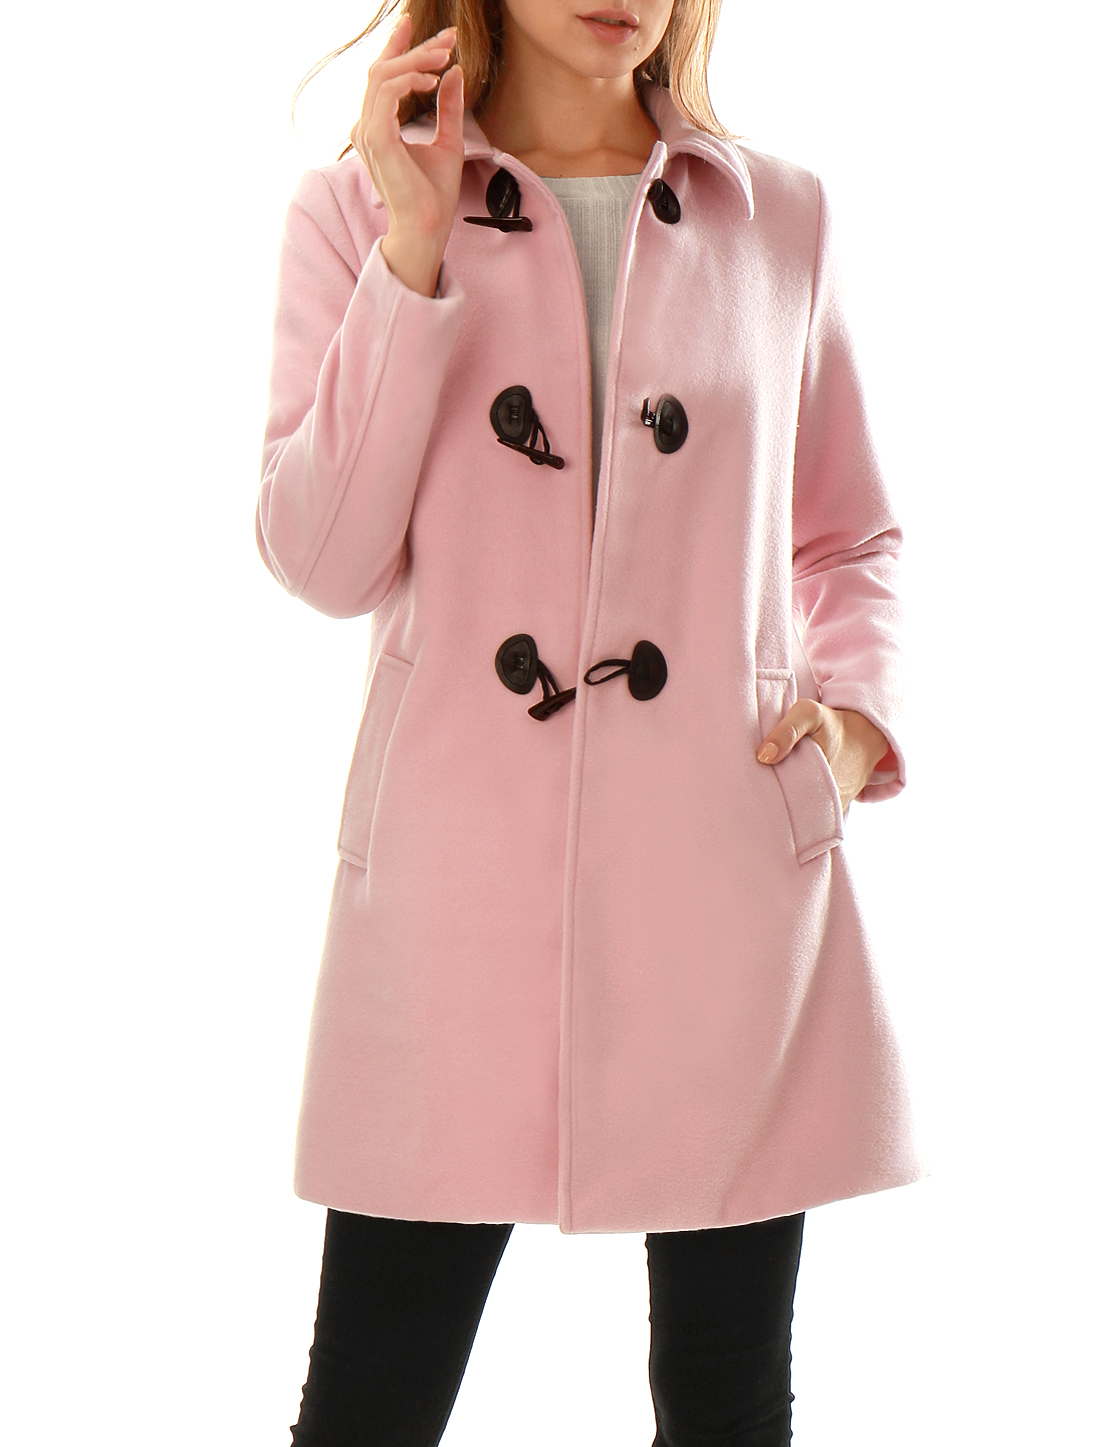 Women Turn Down Collar Slant Pockets Worsted Longline Toggle Coat Pink XS